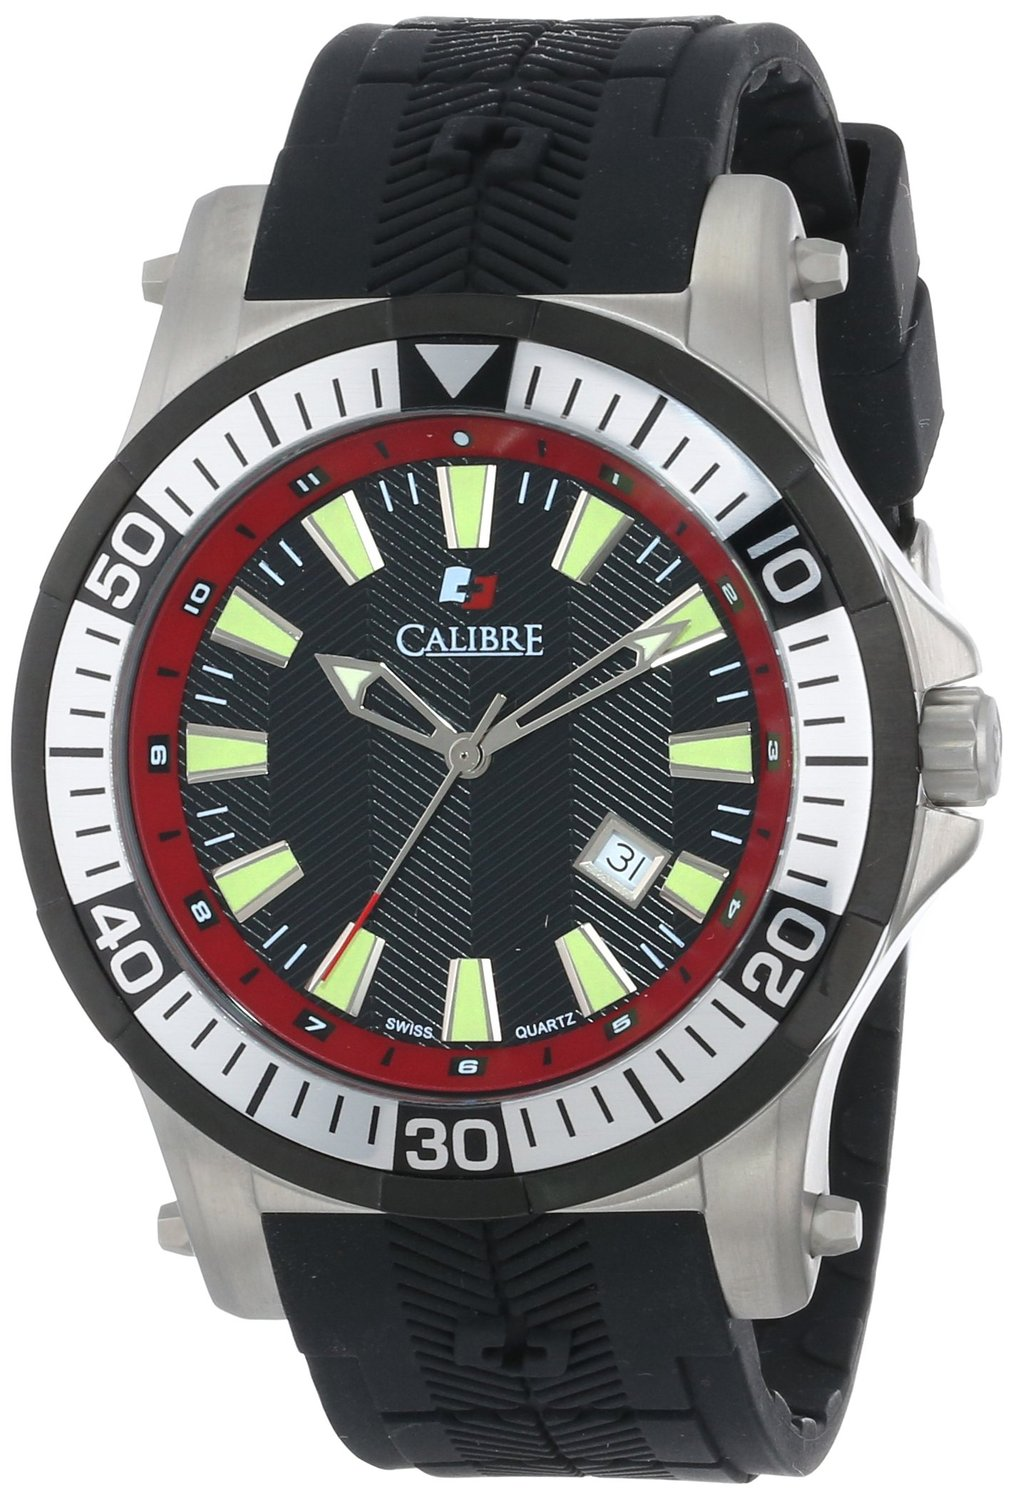 2016 Calibre Watches pricelist